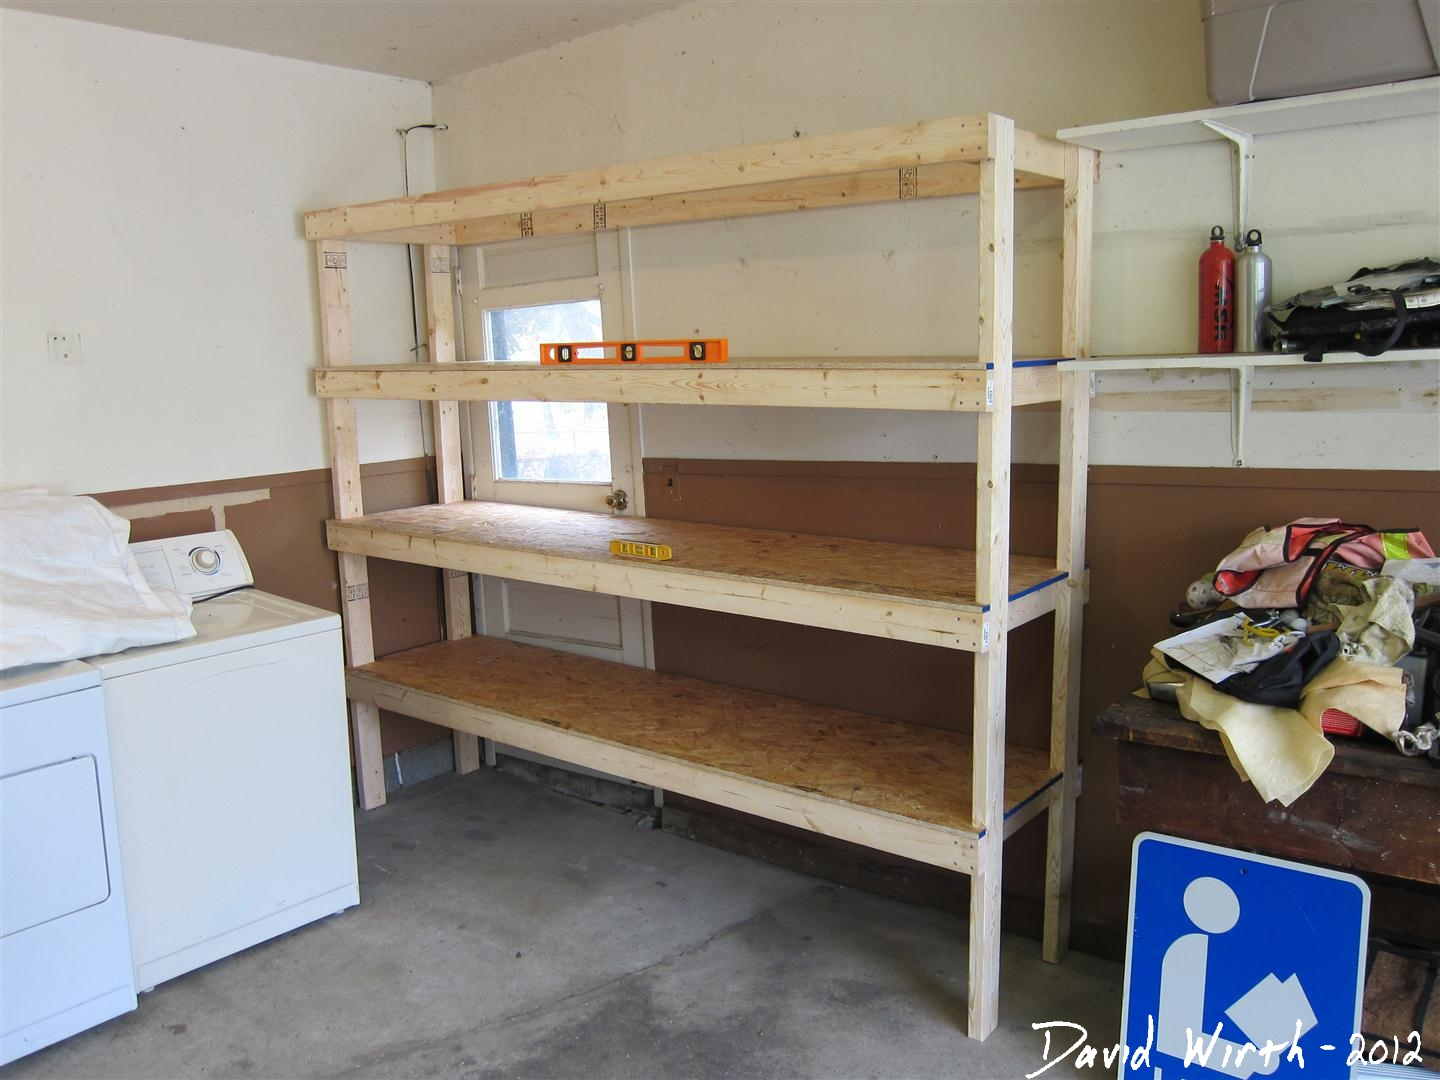 How to build a shelf for the garage for Easy diy shelves